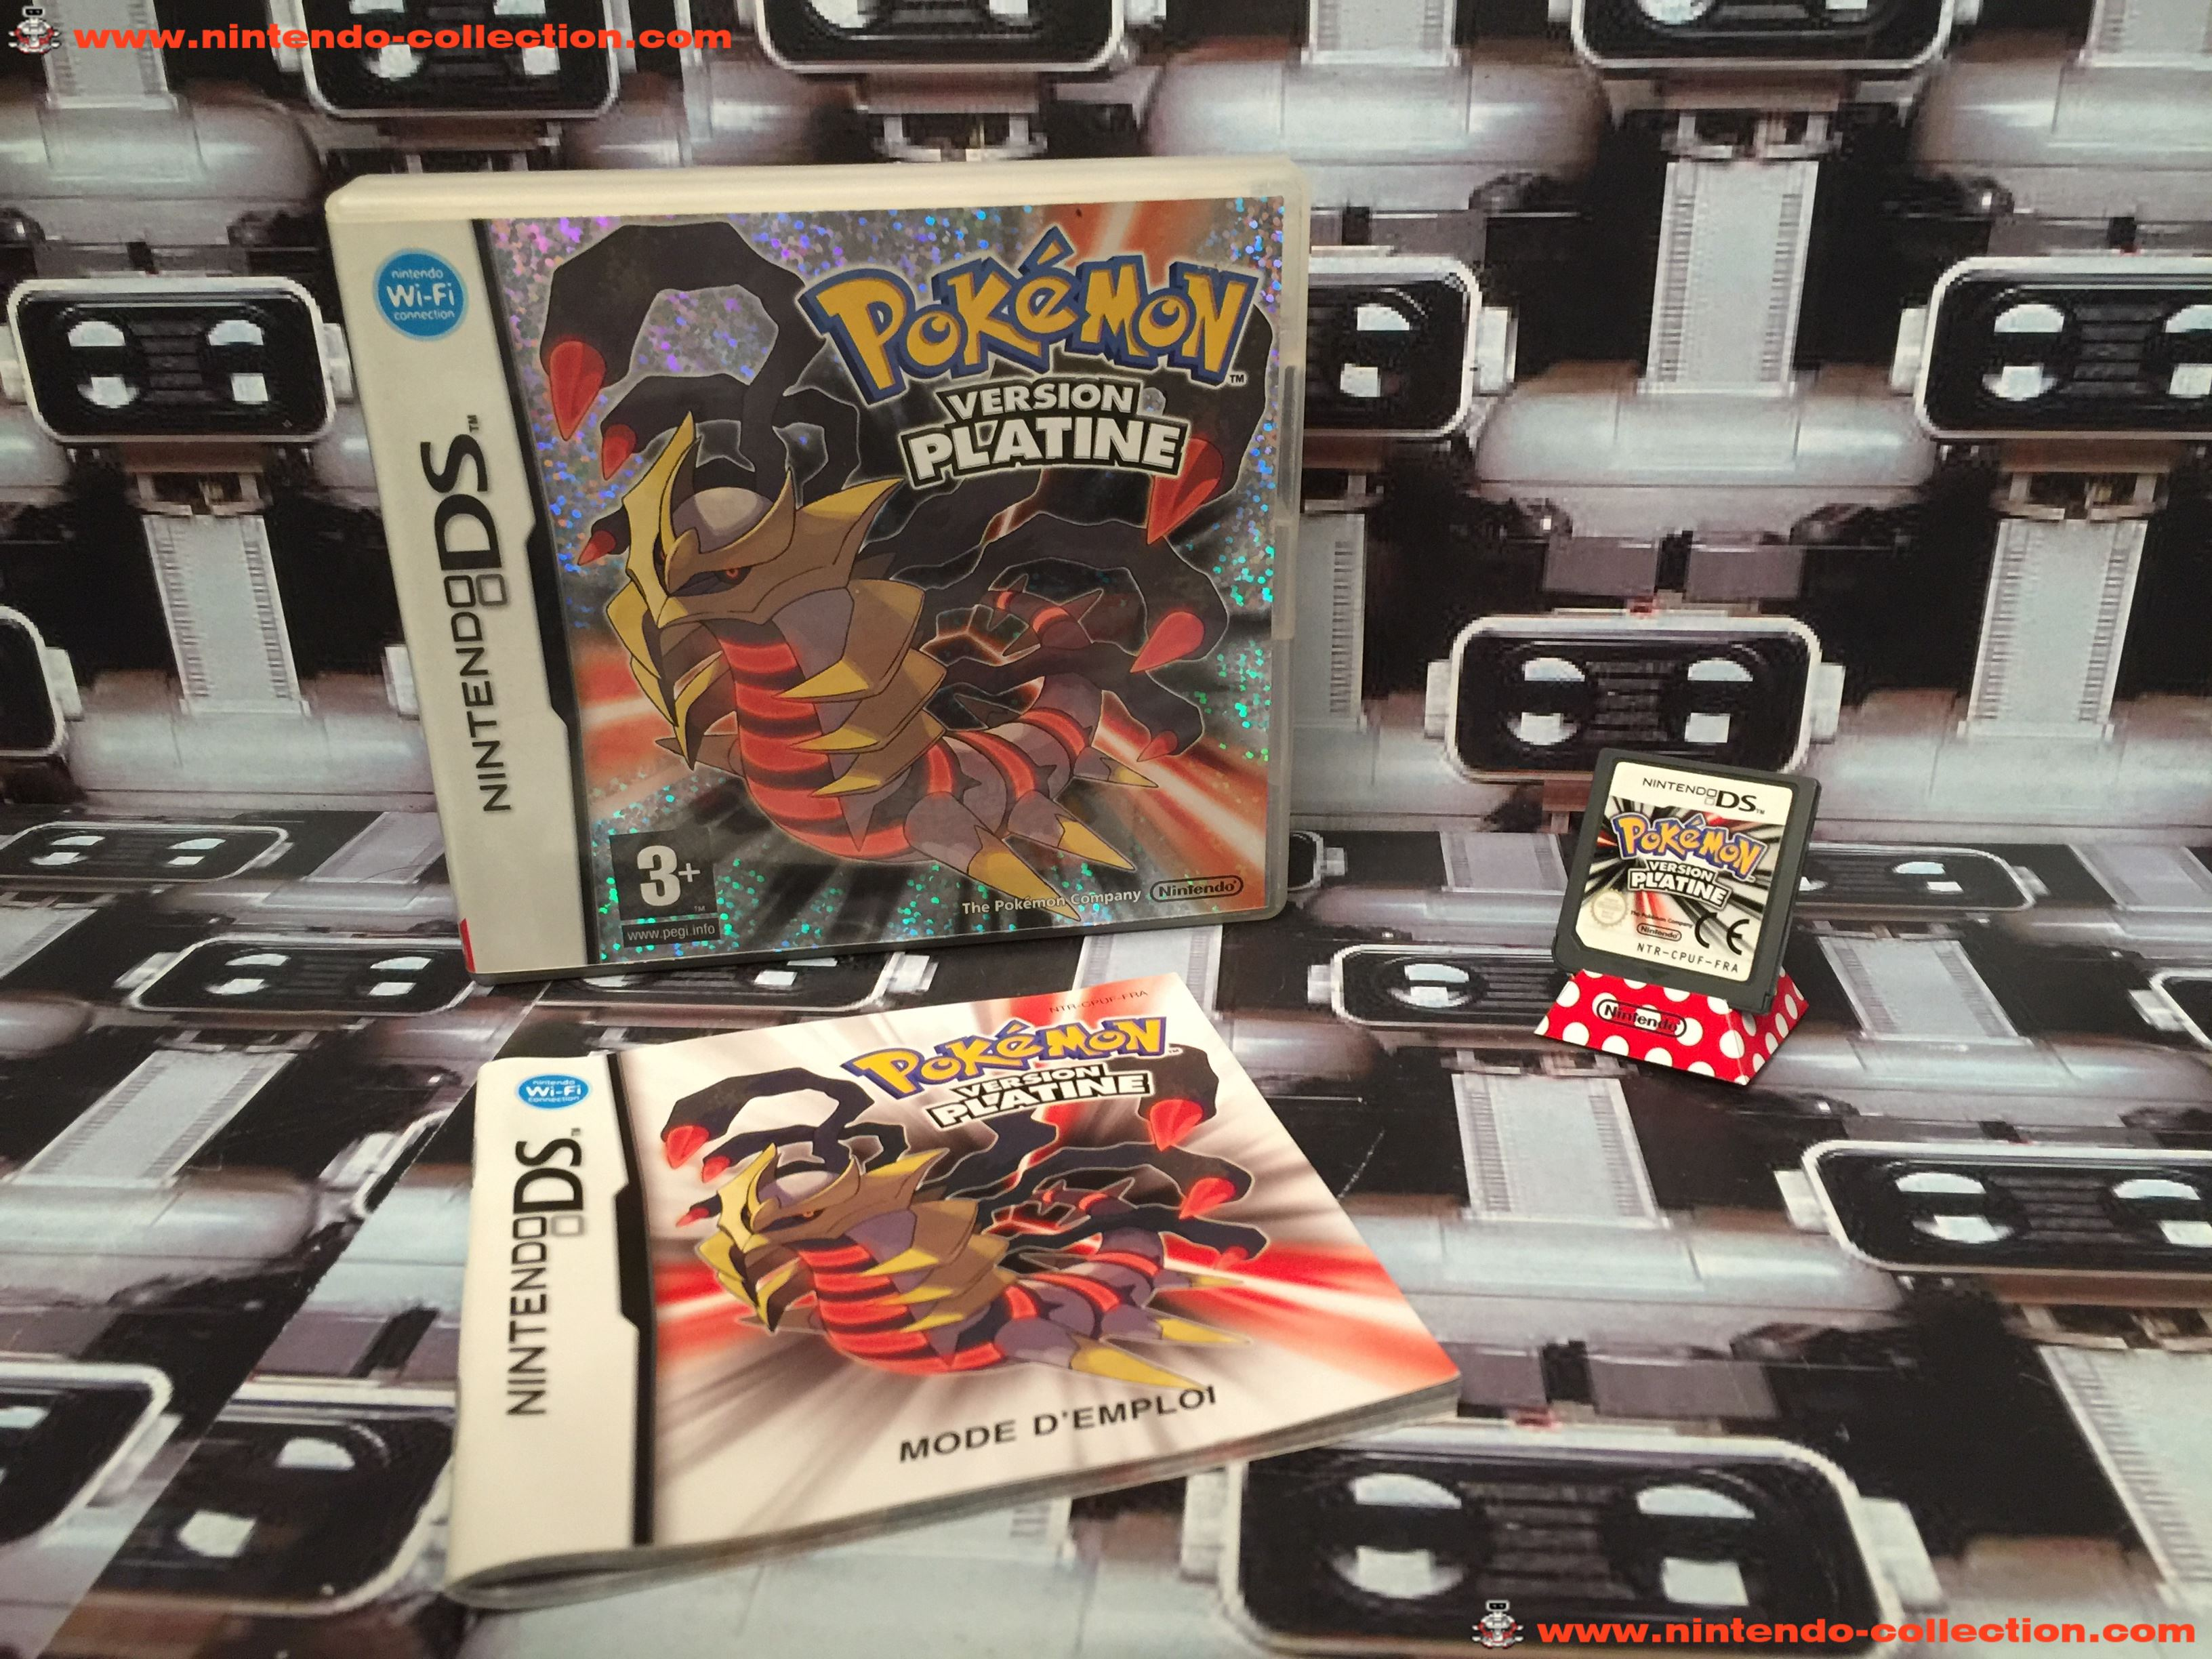 www.nintendo-collection.com - Nintendo DS Jeux Game Pokemon Version Platine Euro Fr